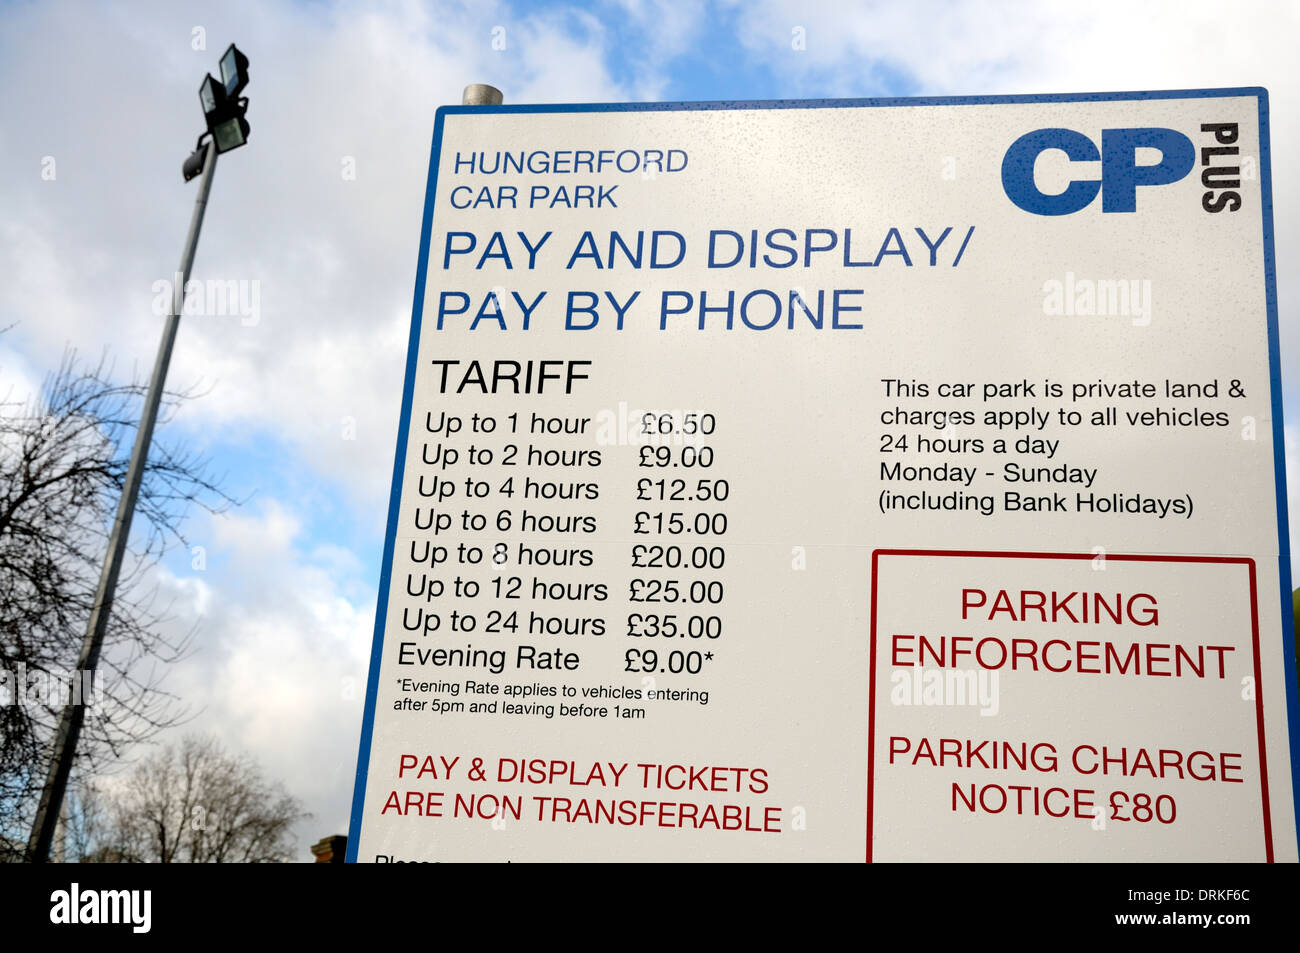 London, England, UK. Car parking charges at Hungerford Car Park on the South Bank - Stock Image